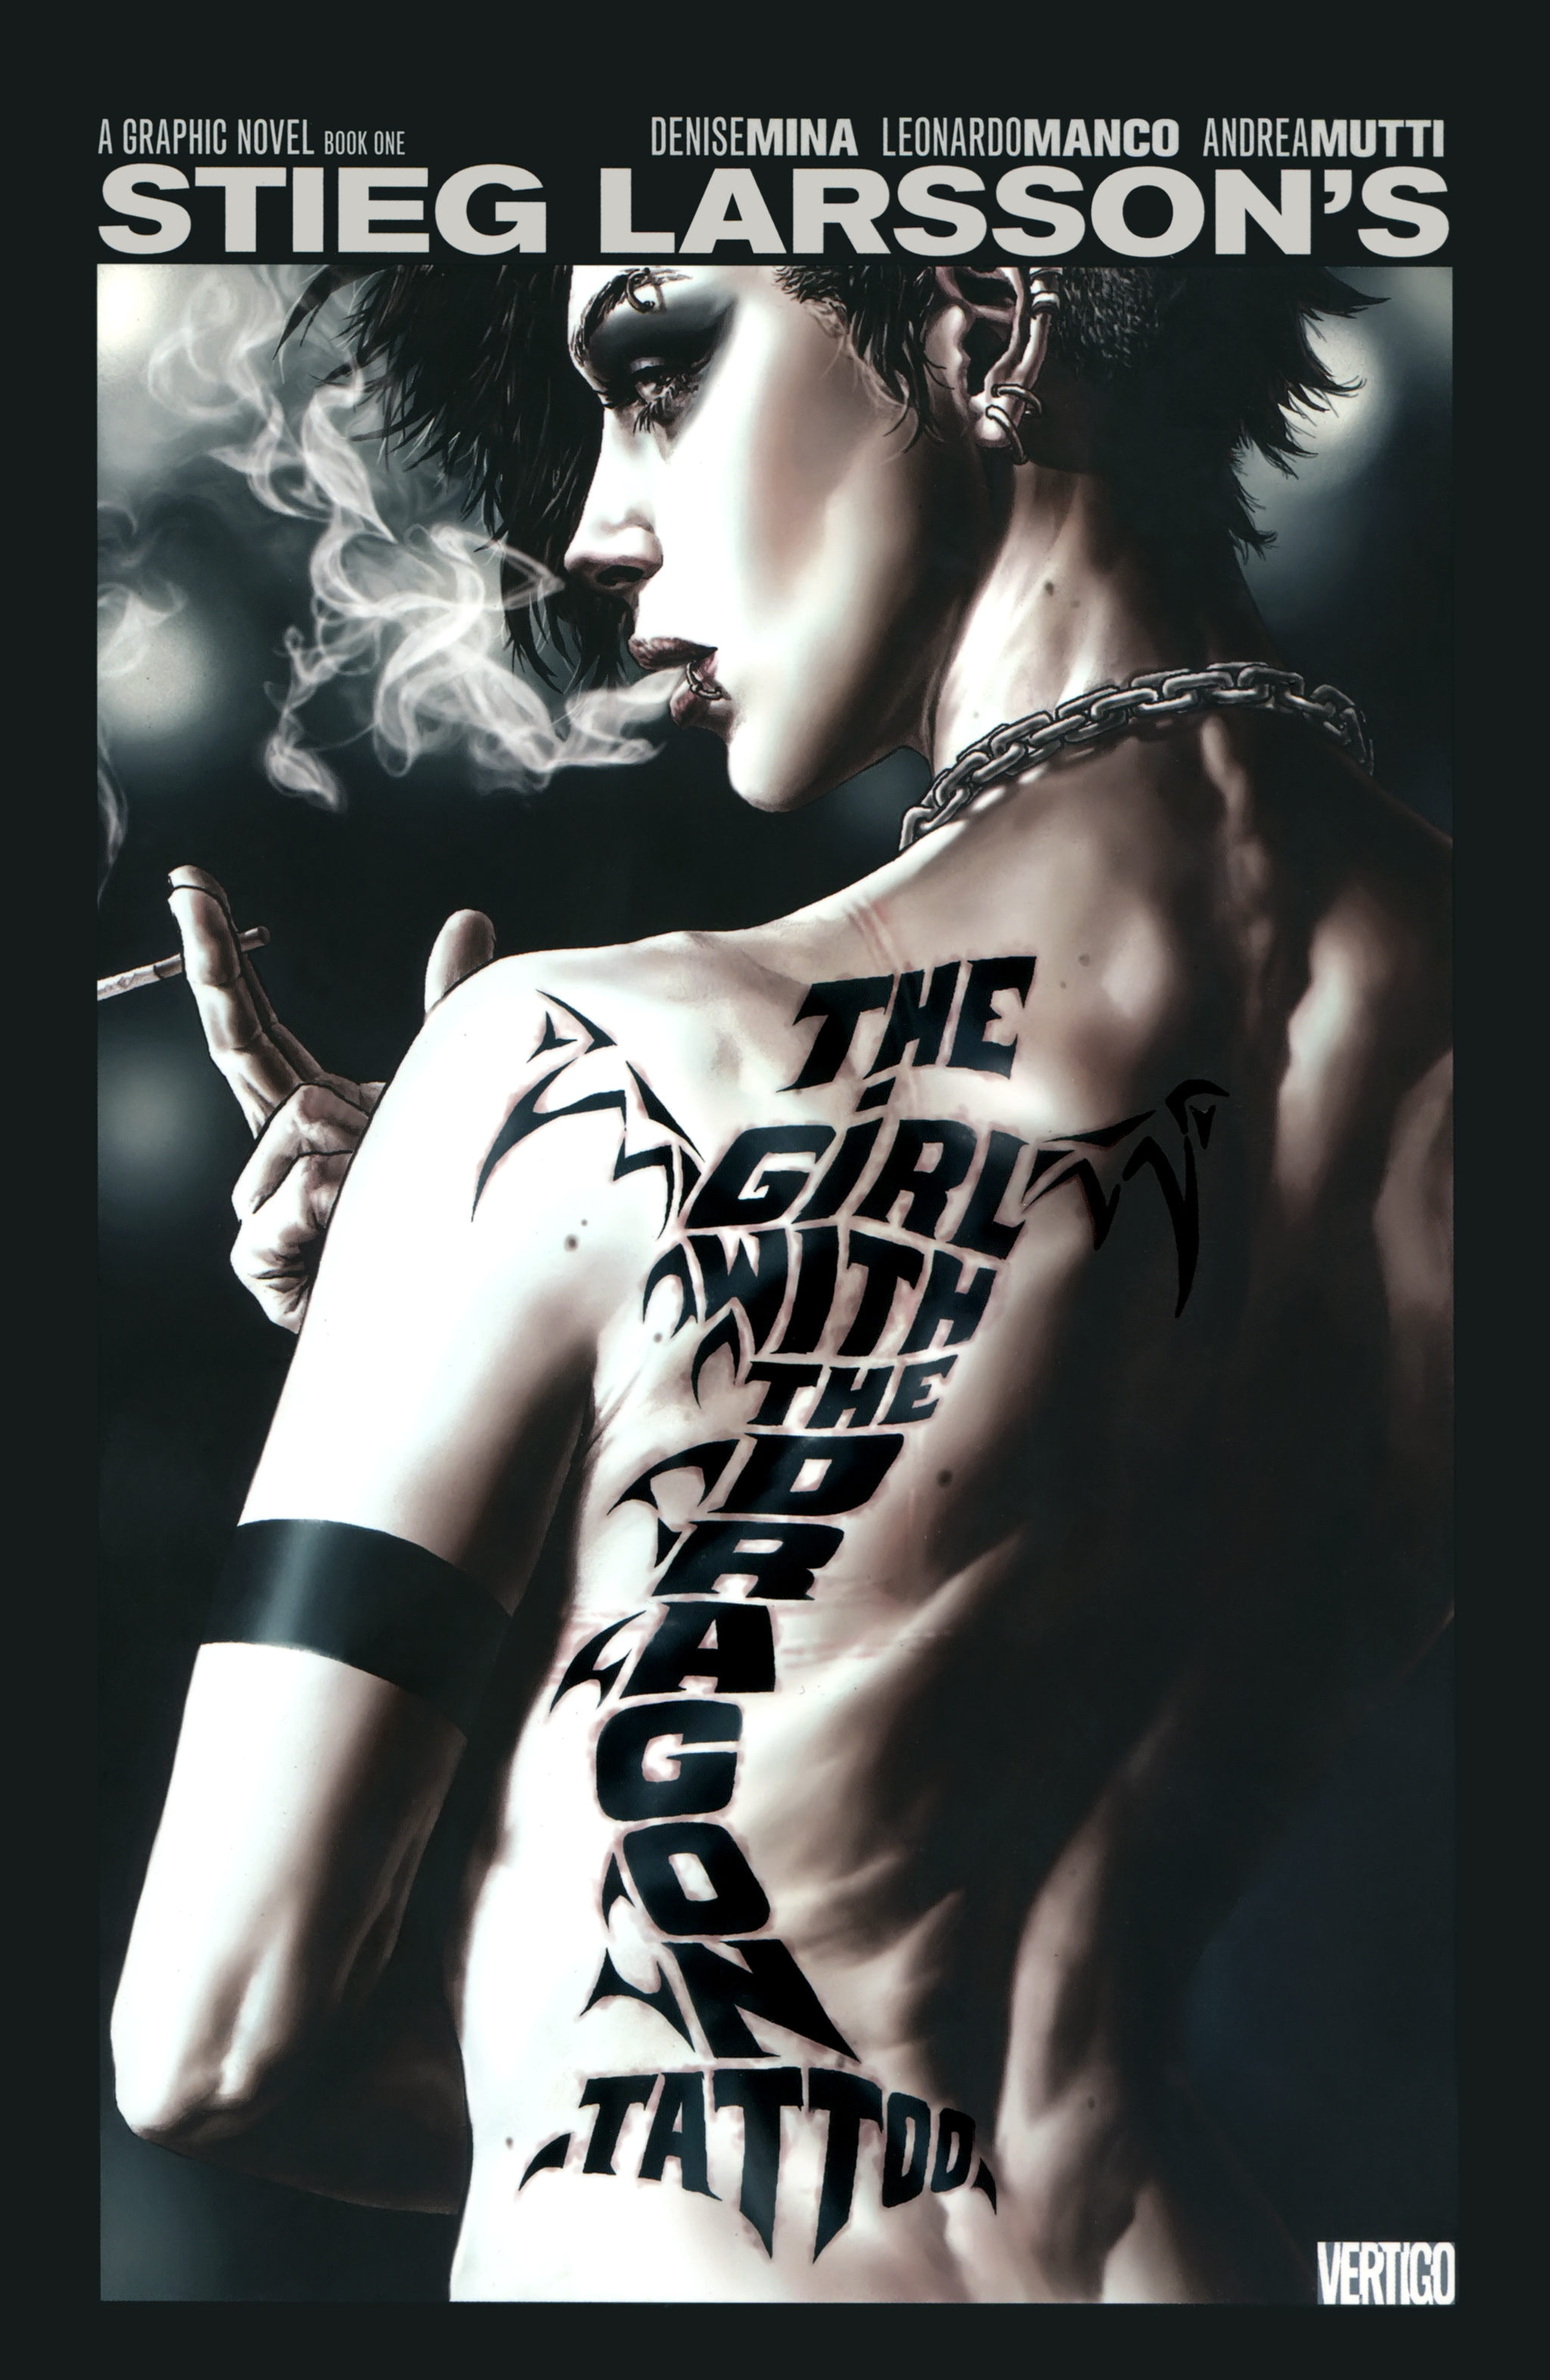 Read online The Girl With the Dragon Tattoo comic -  Issue # TPB 1 - 1